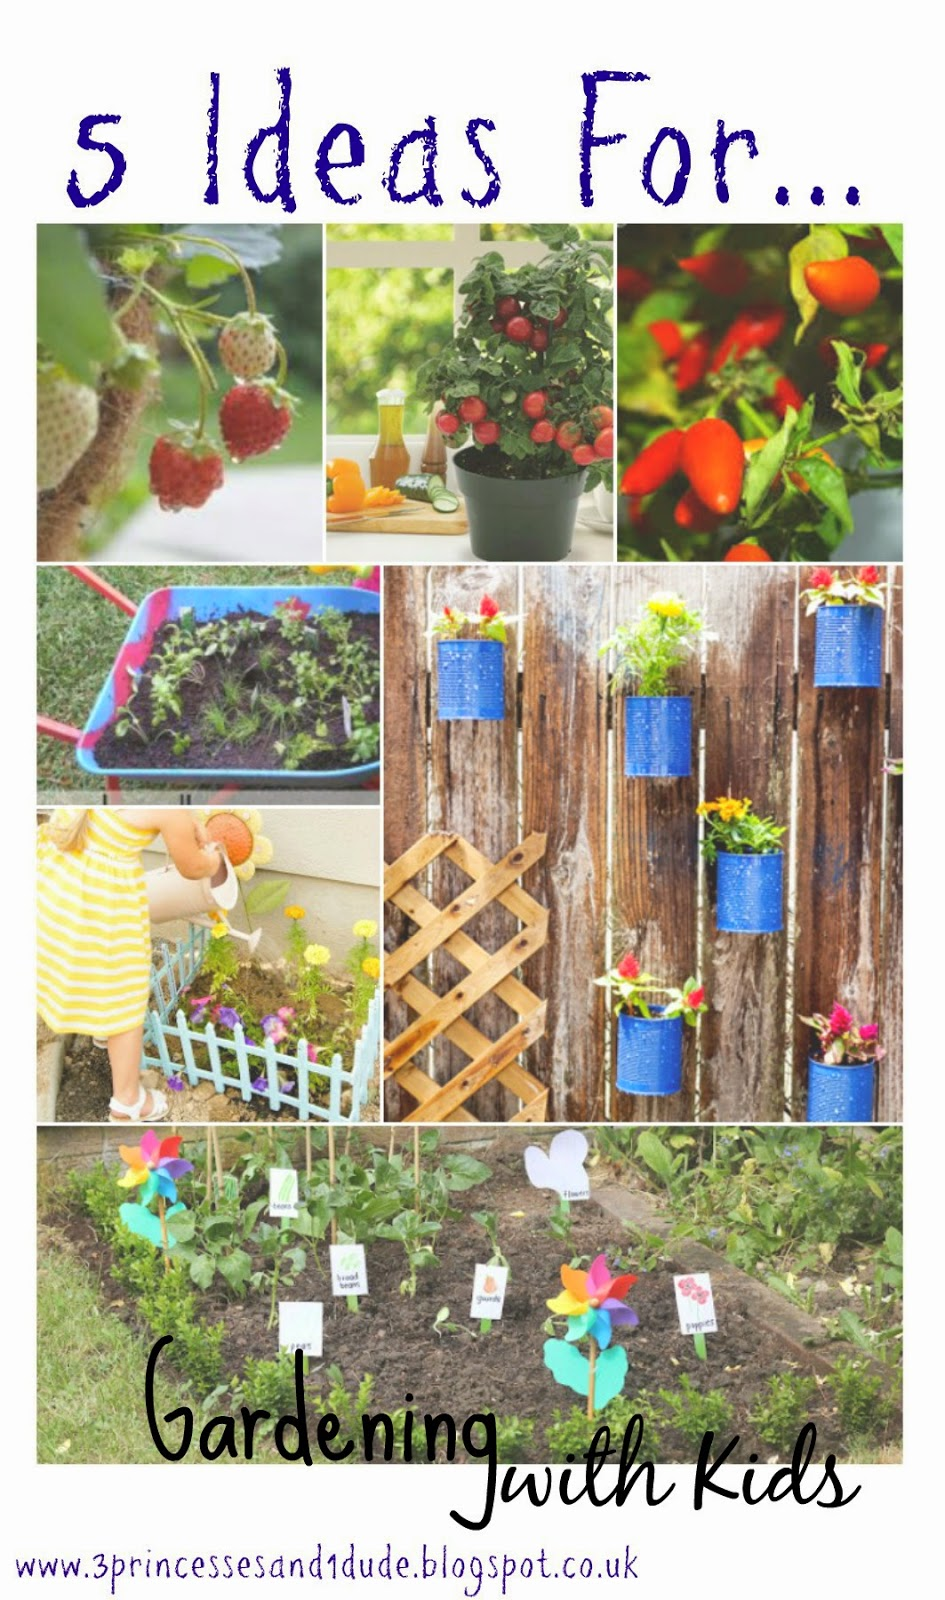 3 Princesses And 1 Dude! 5 Ideas For Gardening With Kids